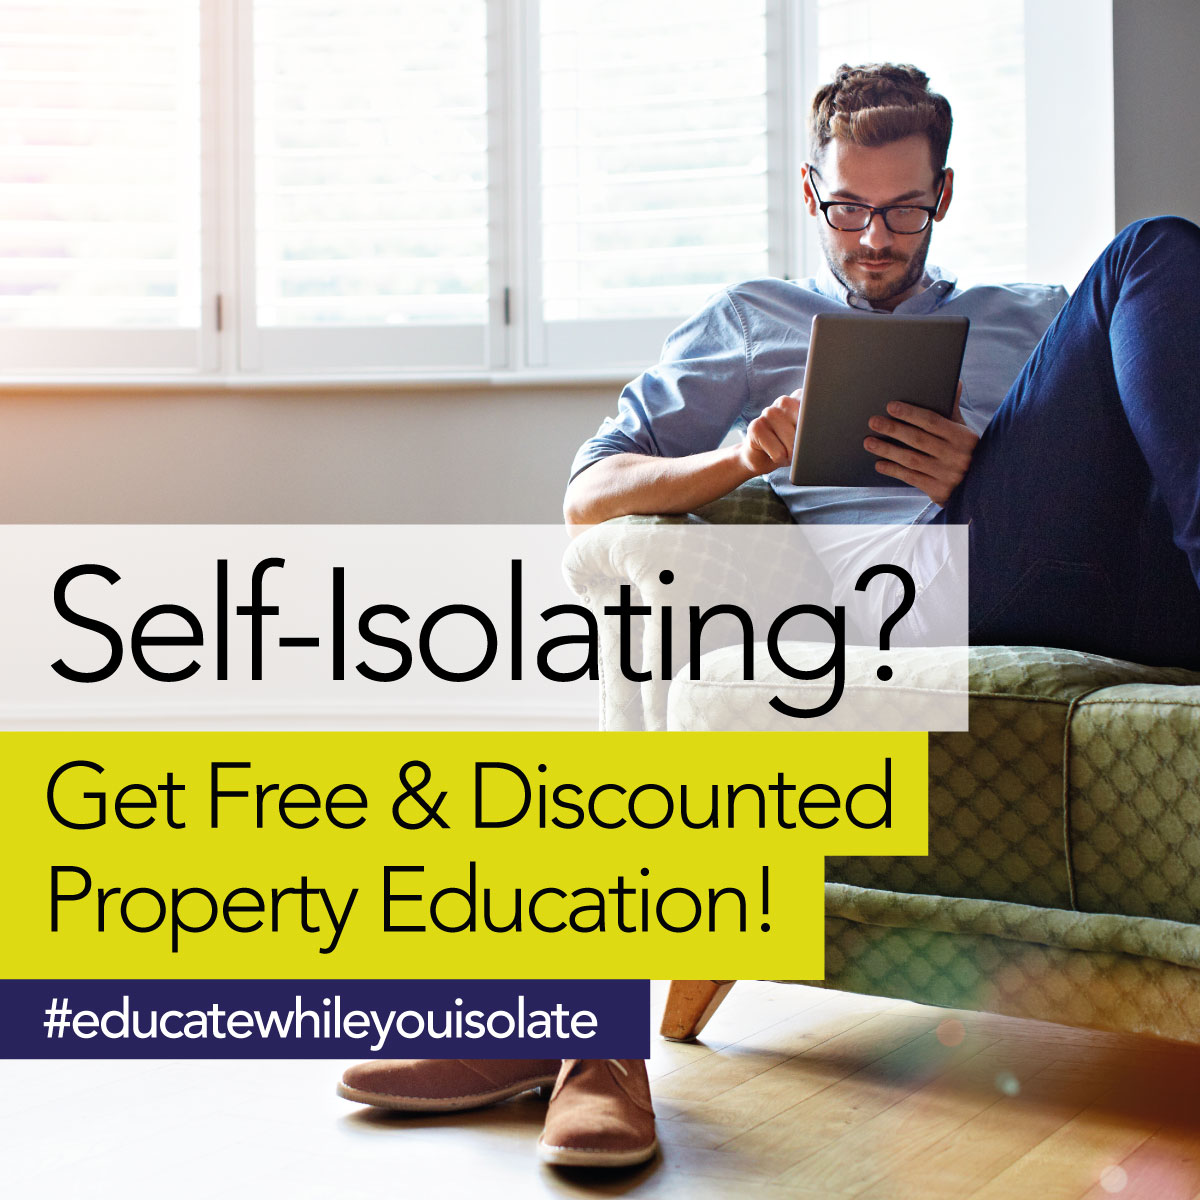 Property education while you self-isolate